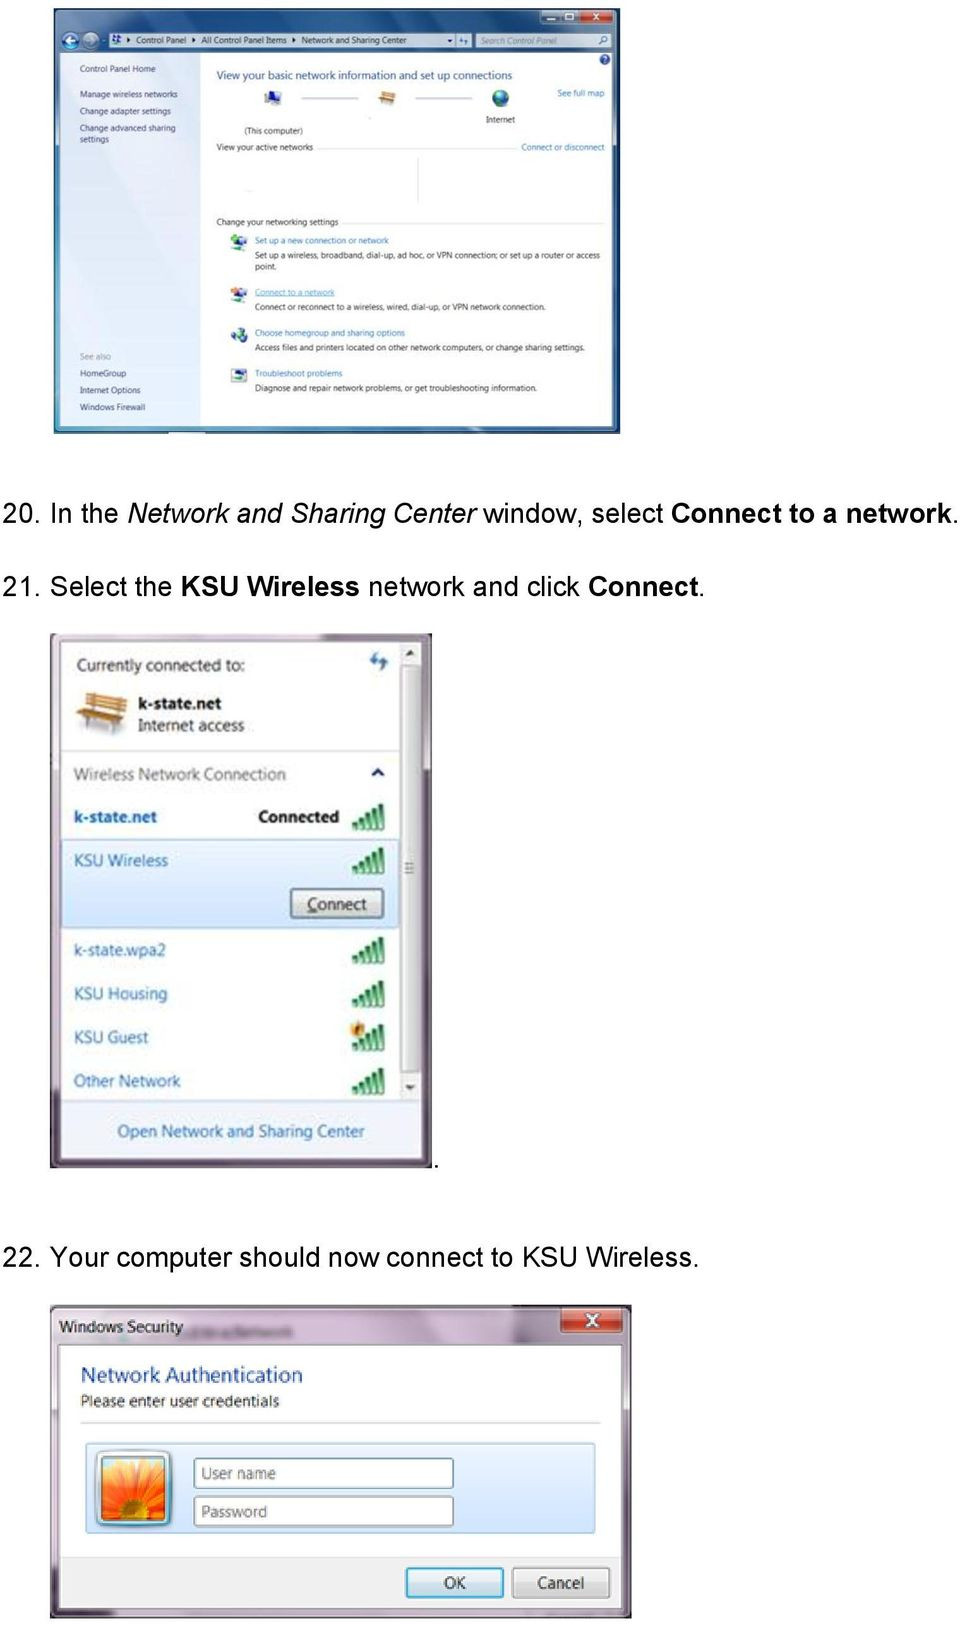 Select the KSU Wireless network and click